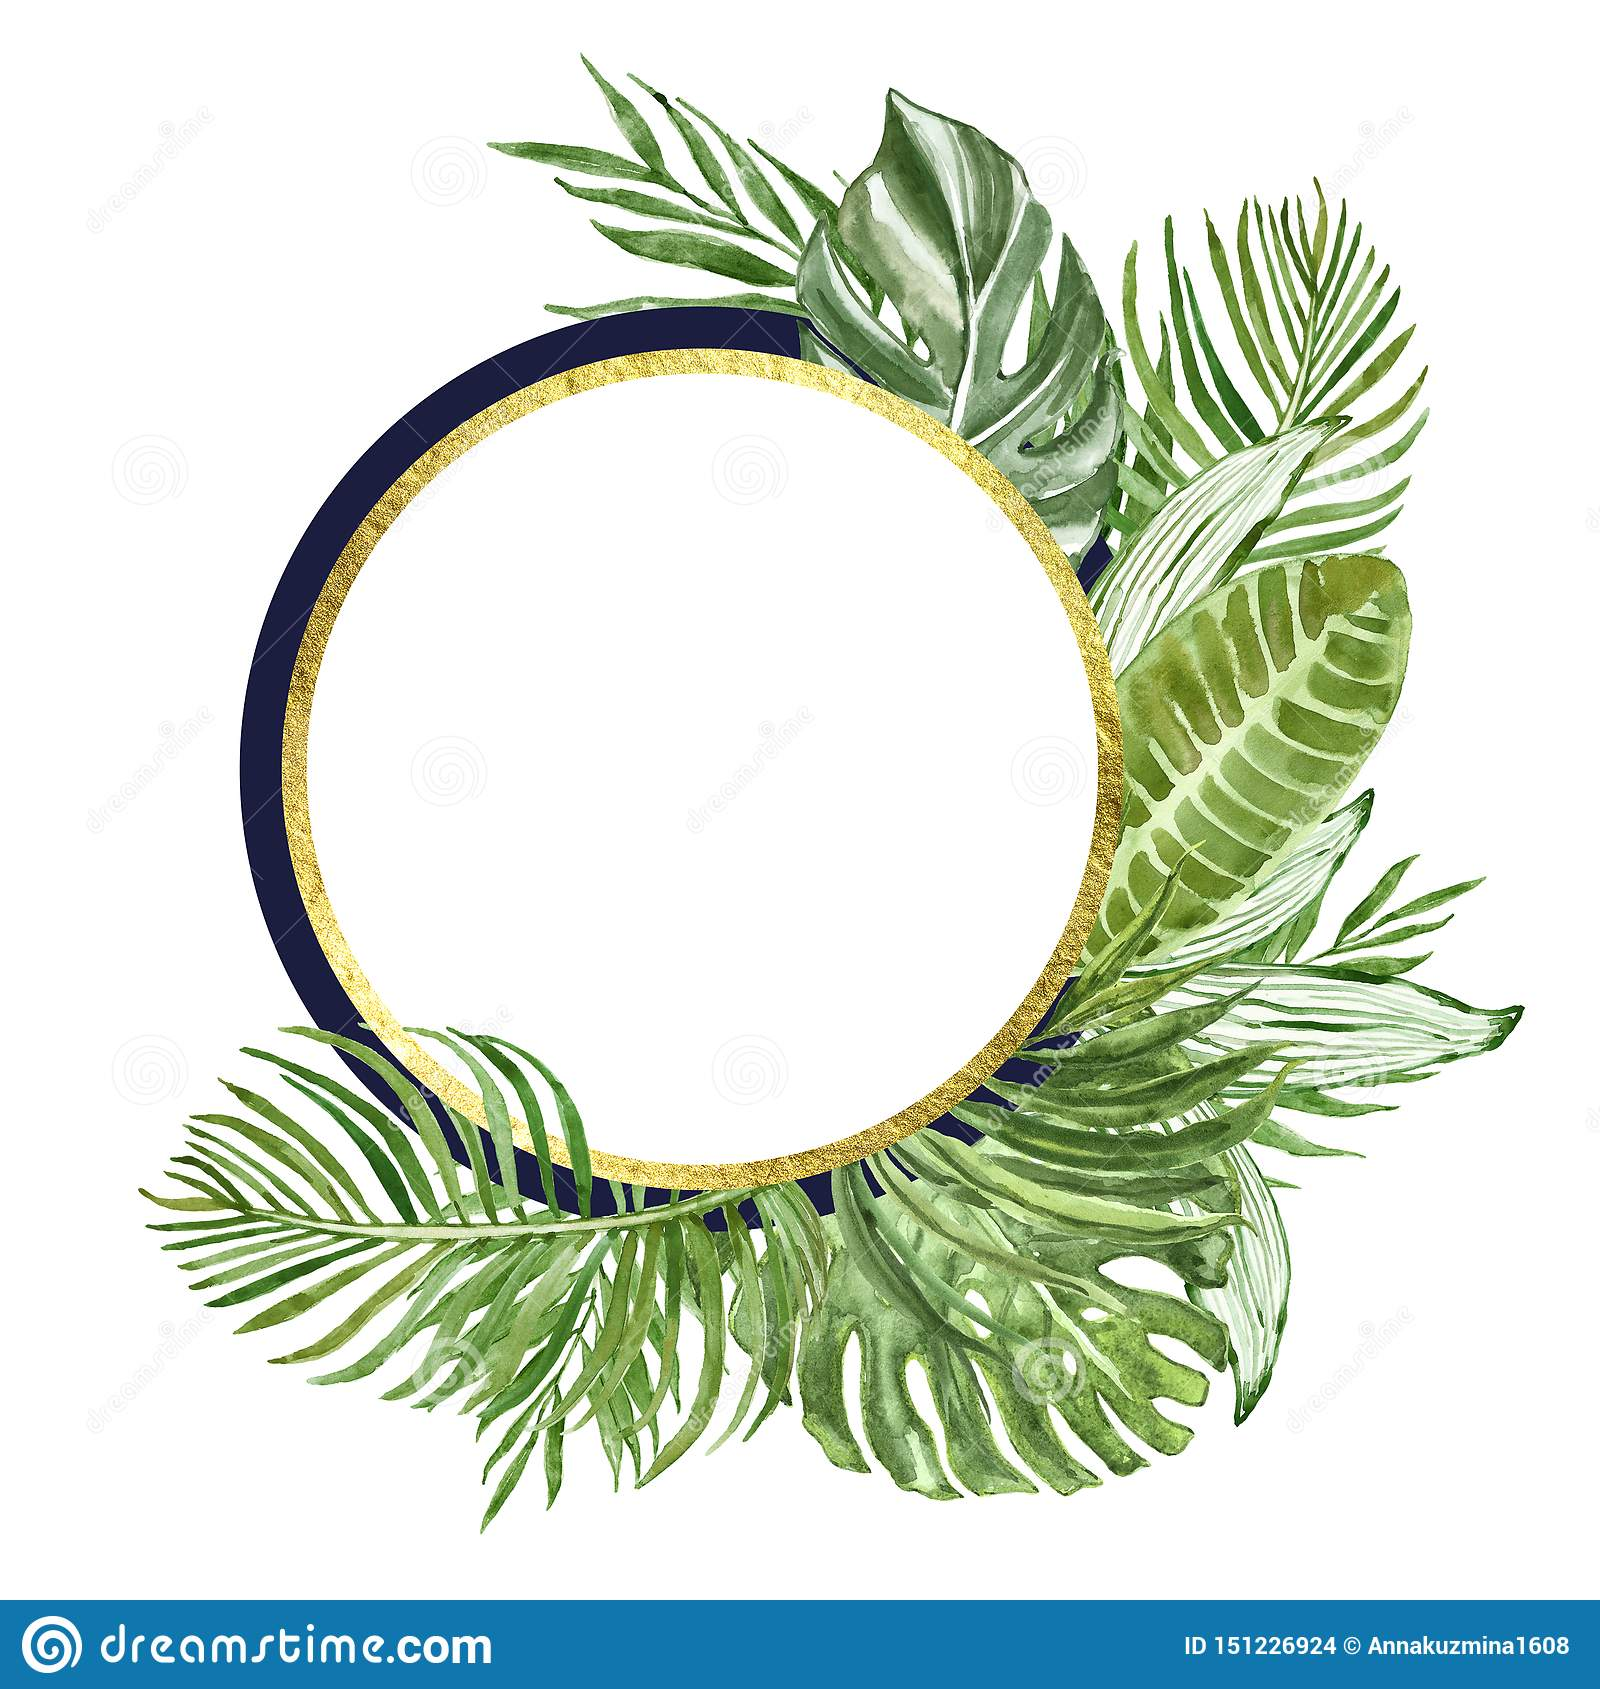 Watercolor Tropical Leaves And Plants Round Frame Golden Geometric Banner And Green Exotic Foliage On White Background Stock Illustration Illustration Of Botanical Drawing 151226924 Shop for tropical leaf wall decor online at target. https www dreamstime com watercolor tropical leaves plants round frame golden geometric banner green exotic foliage white background space image151226924